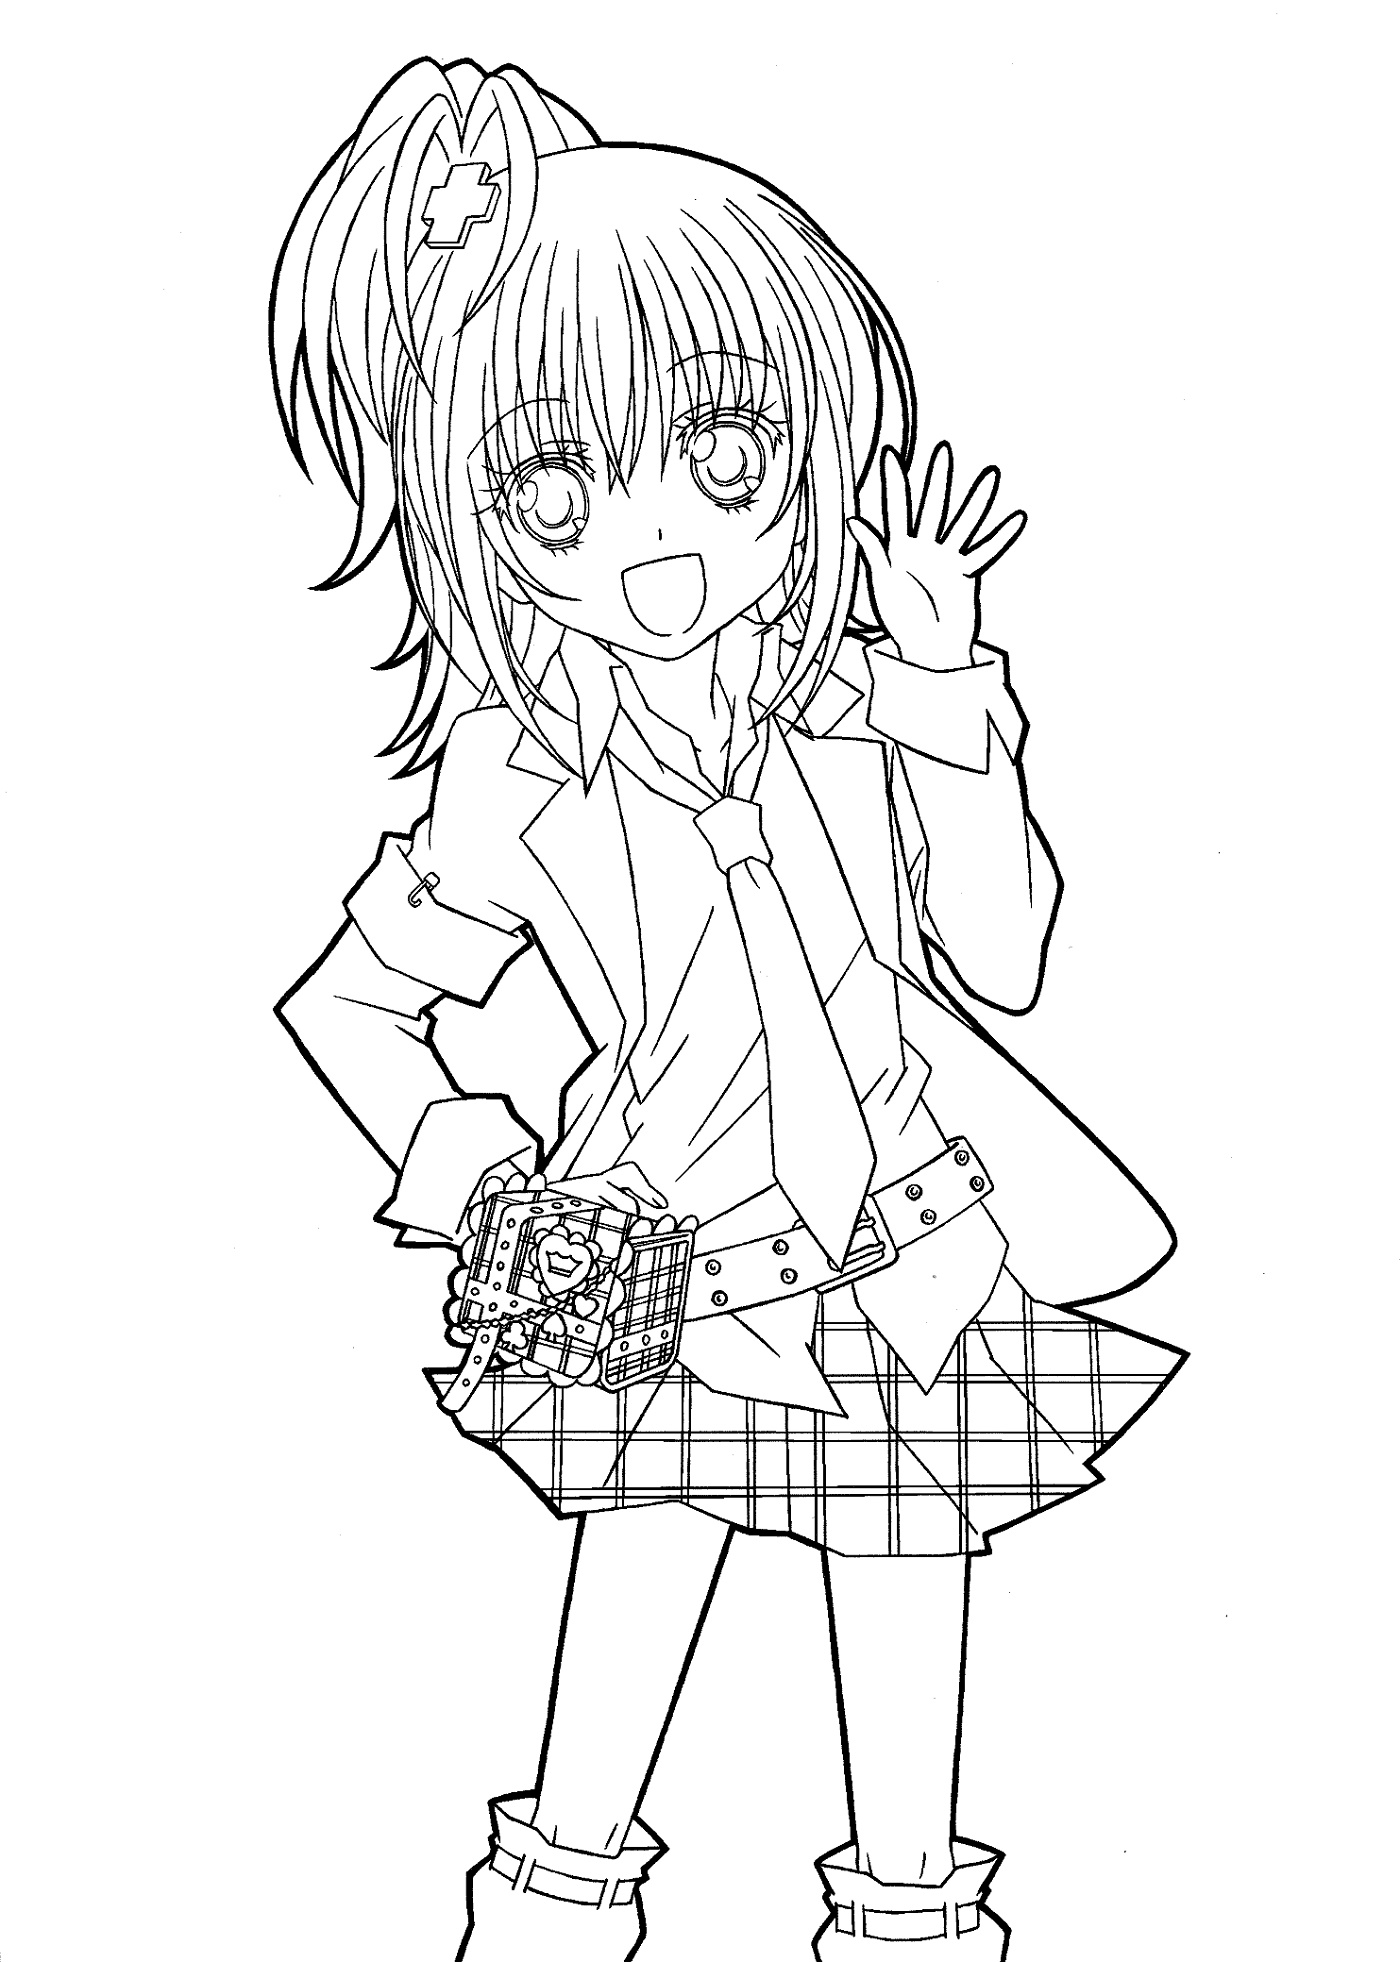 coloring anime girl nerdy girl drawing at getdrawings free download anime coloring girl